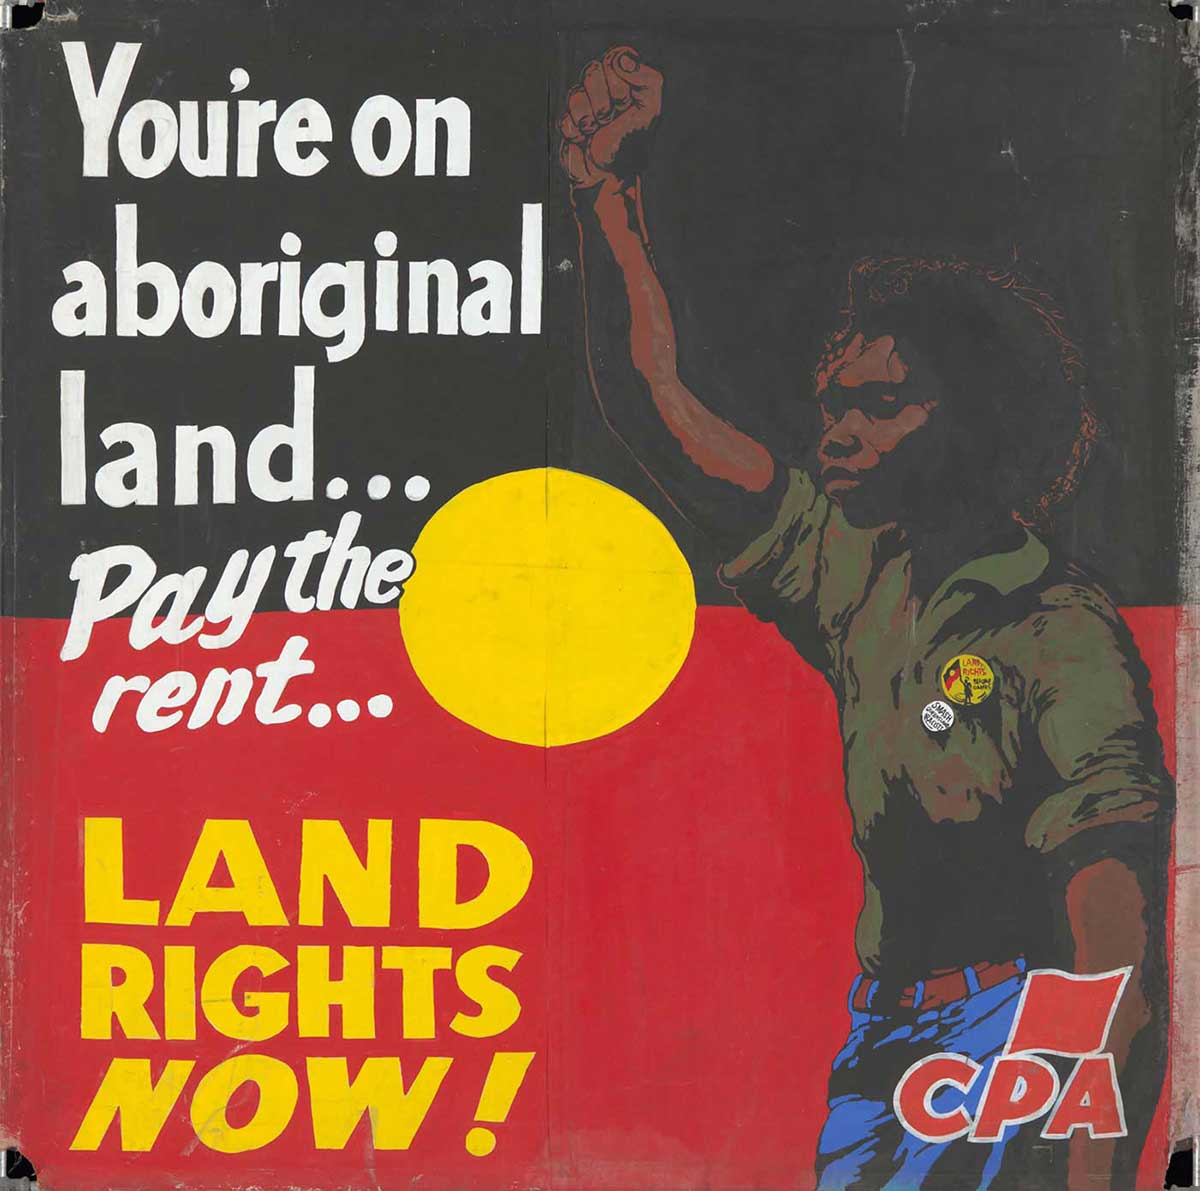 A protest banner hand painted on canvas, with the text 'You're on / aboriginal / land ... / Pay the rent ... / LAND RIGHTS NOW!'. An Aboriginal man stands to the right of the text with a raised fist. The background is the black, yellow and red of the Aboriginal flag, and a red 'CPA' logo is in the lower right corner. - click to view larger image